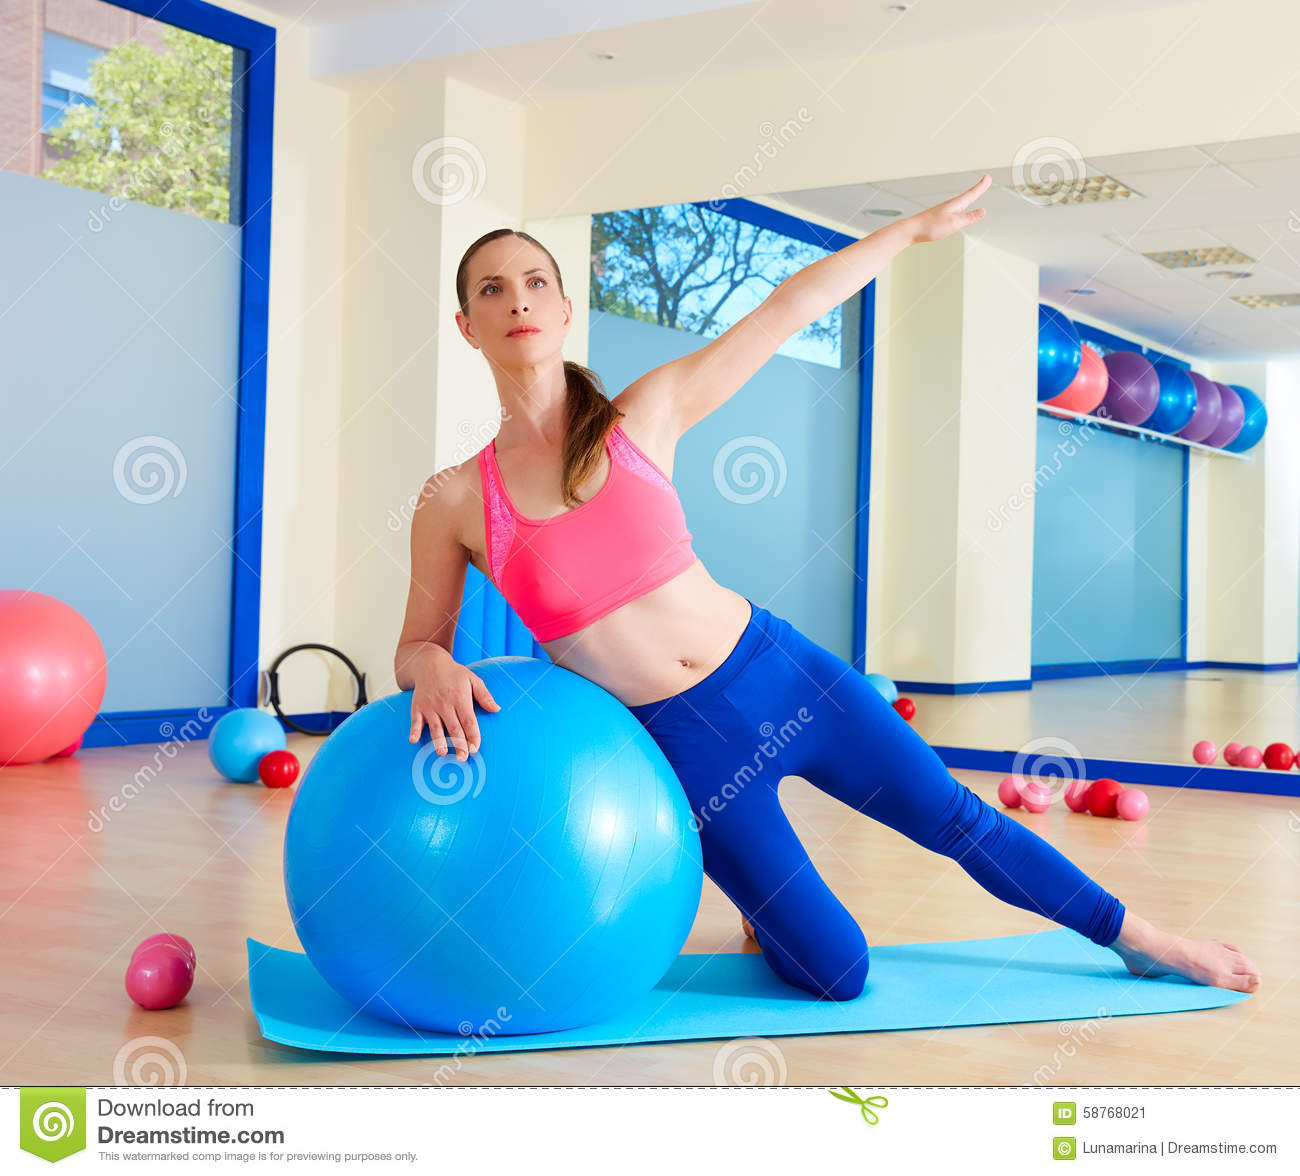 Woman Pilates Chair Exercises Fitness Stock Photo: Pilates Woman Side Bend Fitball Exercise Stock Photo